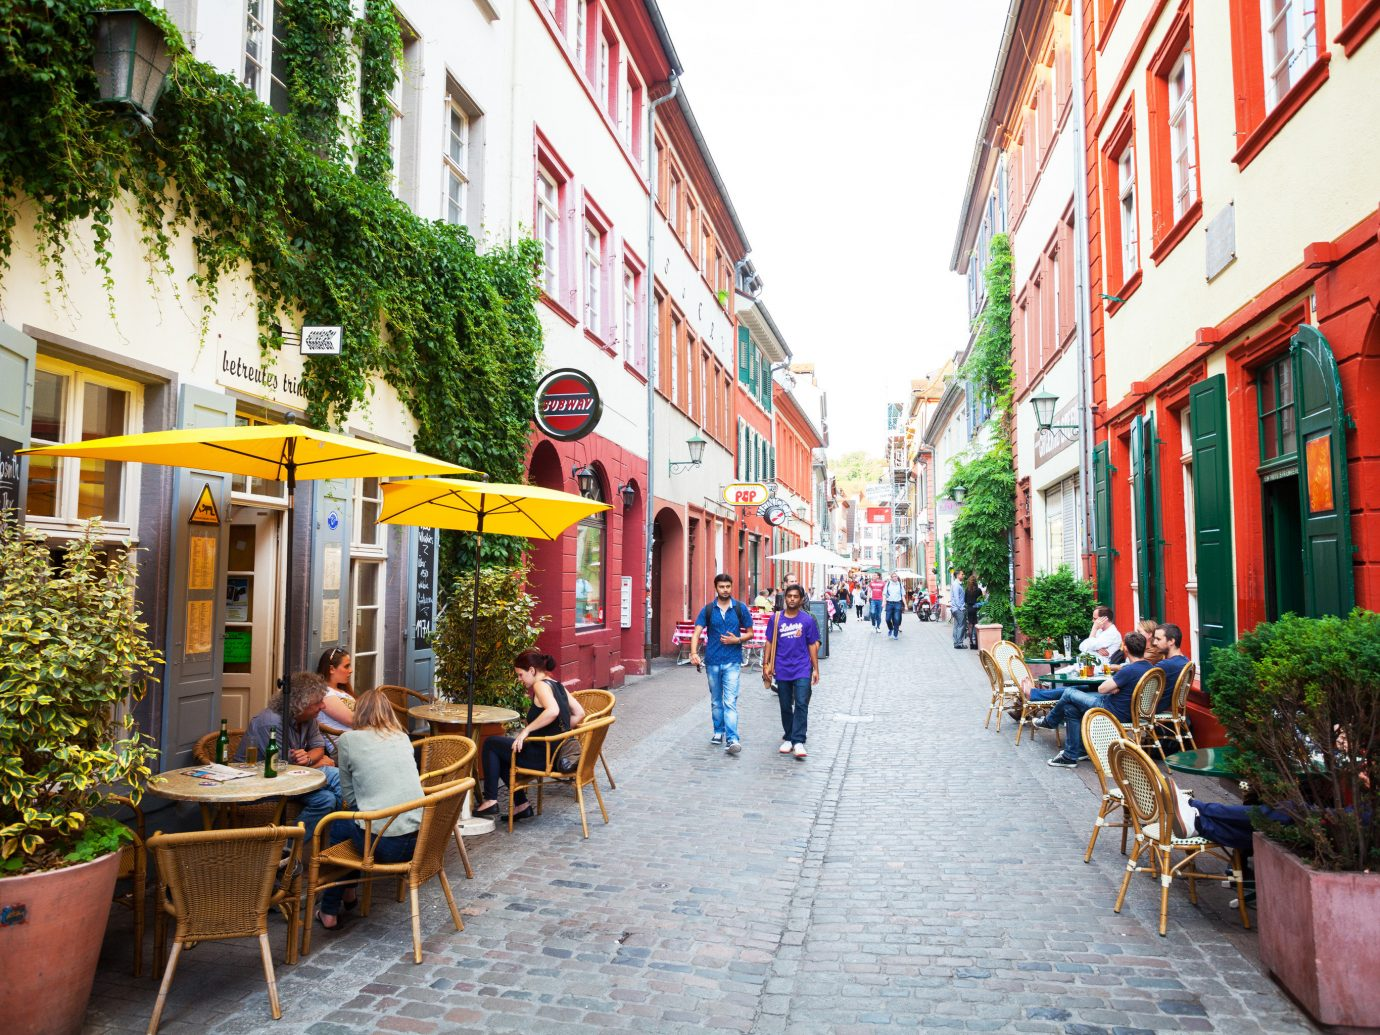 Berlin Germany Munich Trip Ideas Town street neighbourhood alley infrastructure City road urban area mixed use Downtown pedestrian tourism marketplace vacation house tree